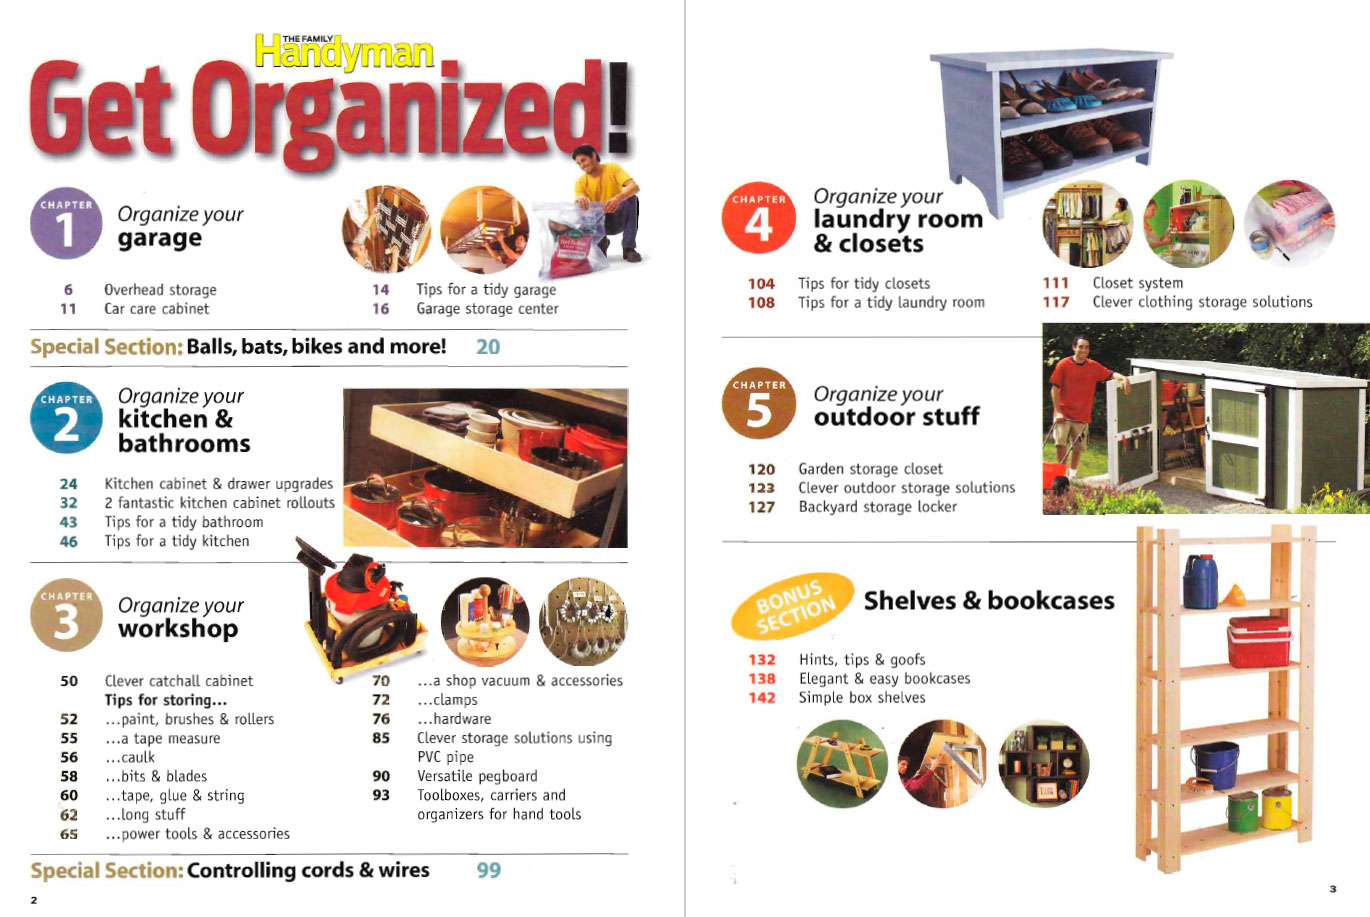 Get organized! 155 DIY Projects / The Family Handyman Special Issue